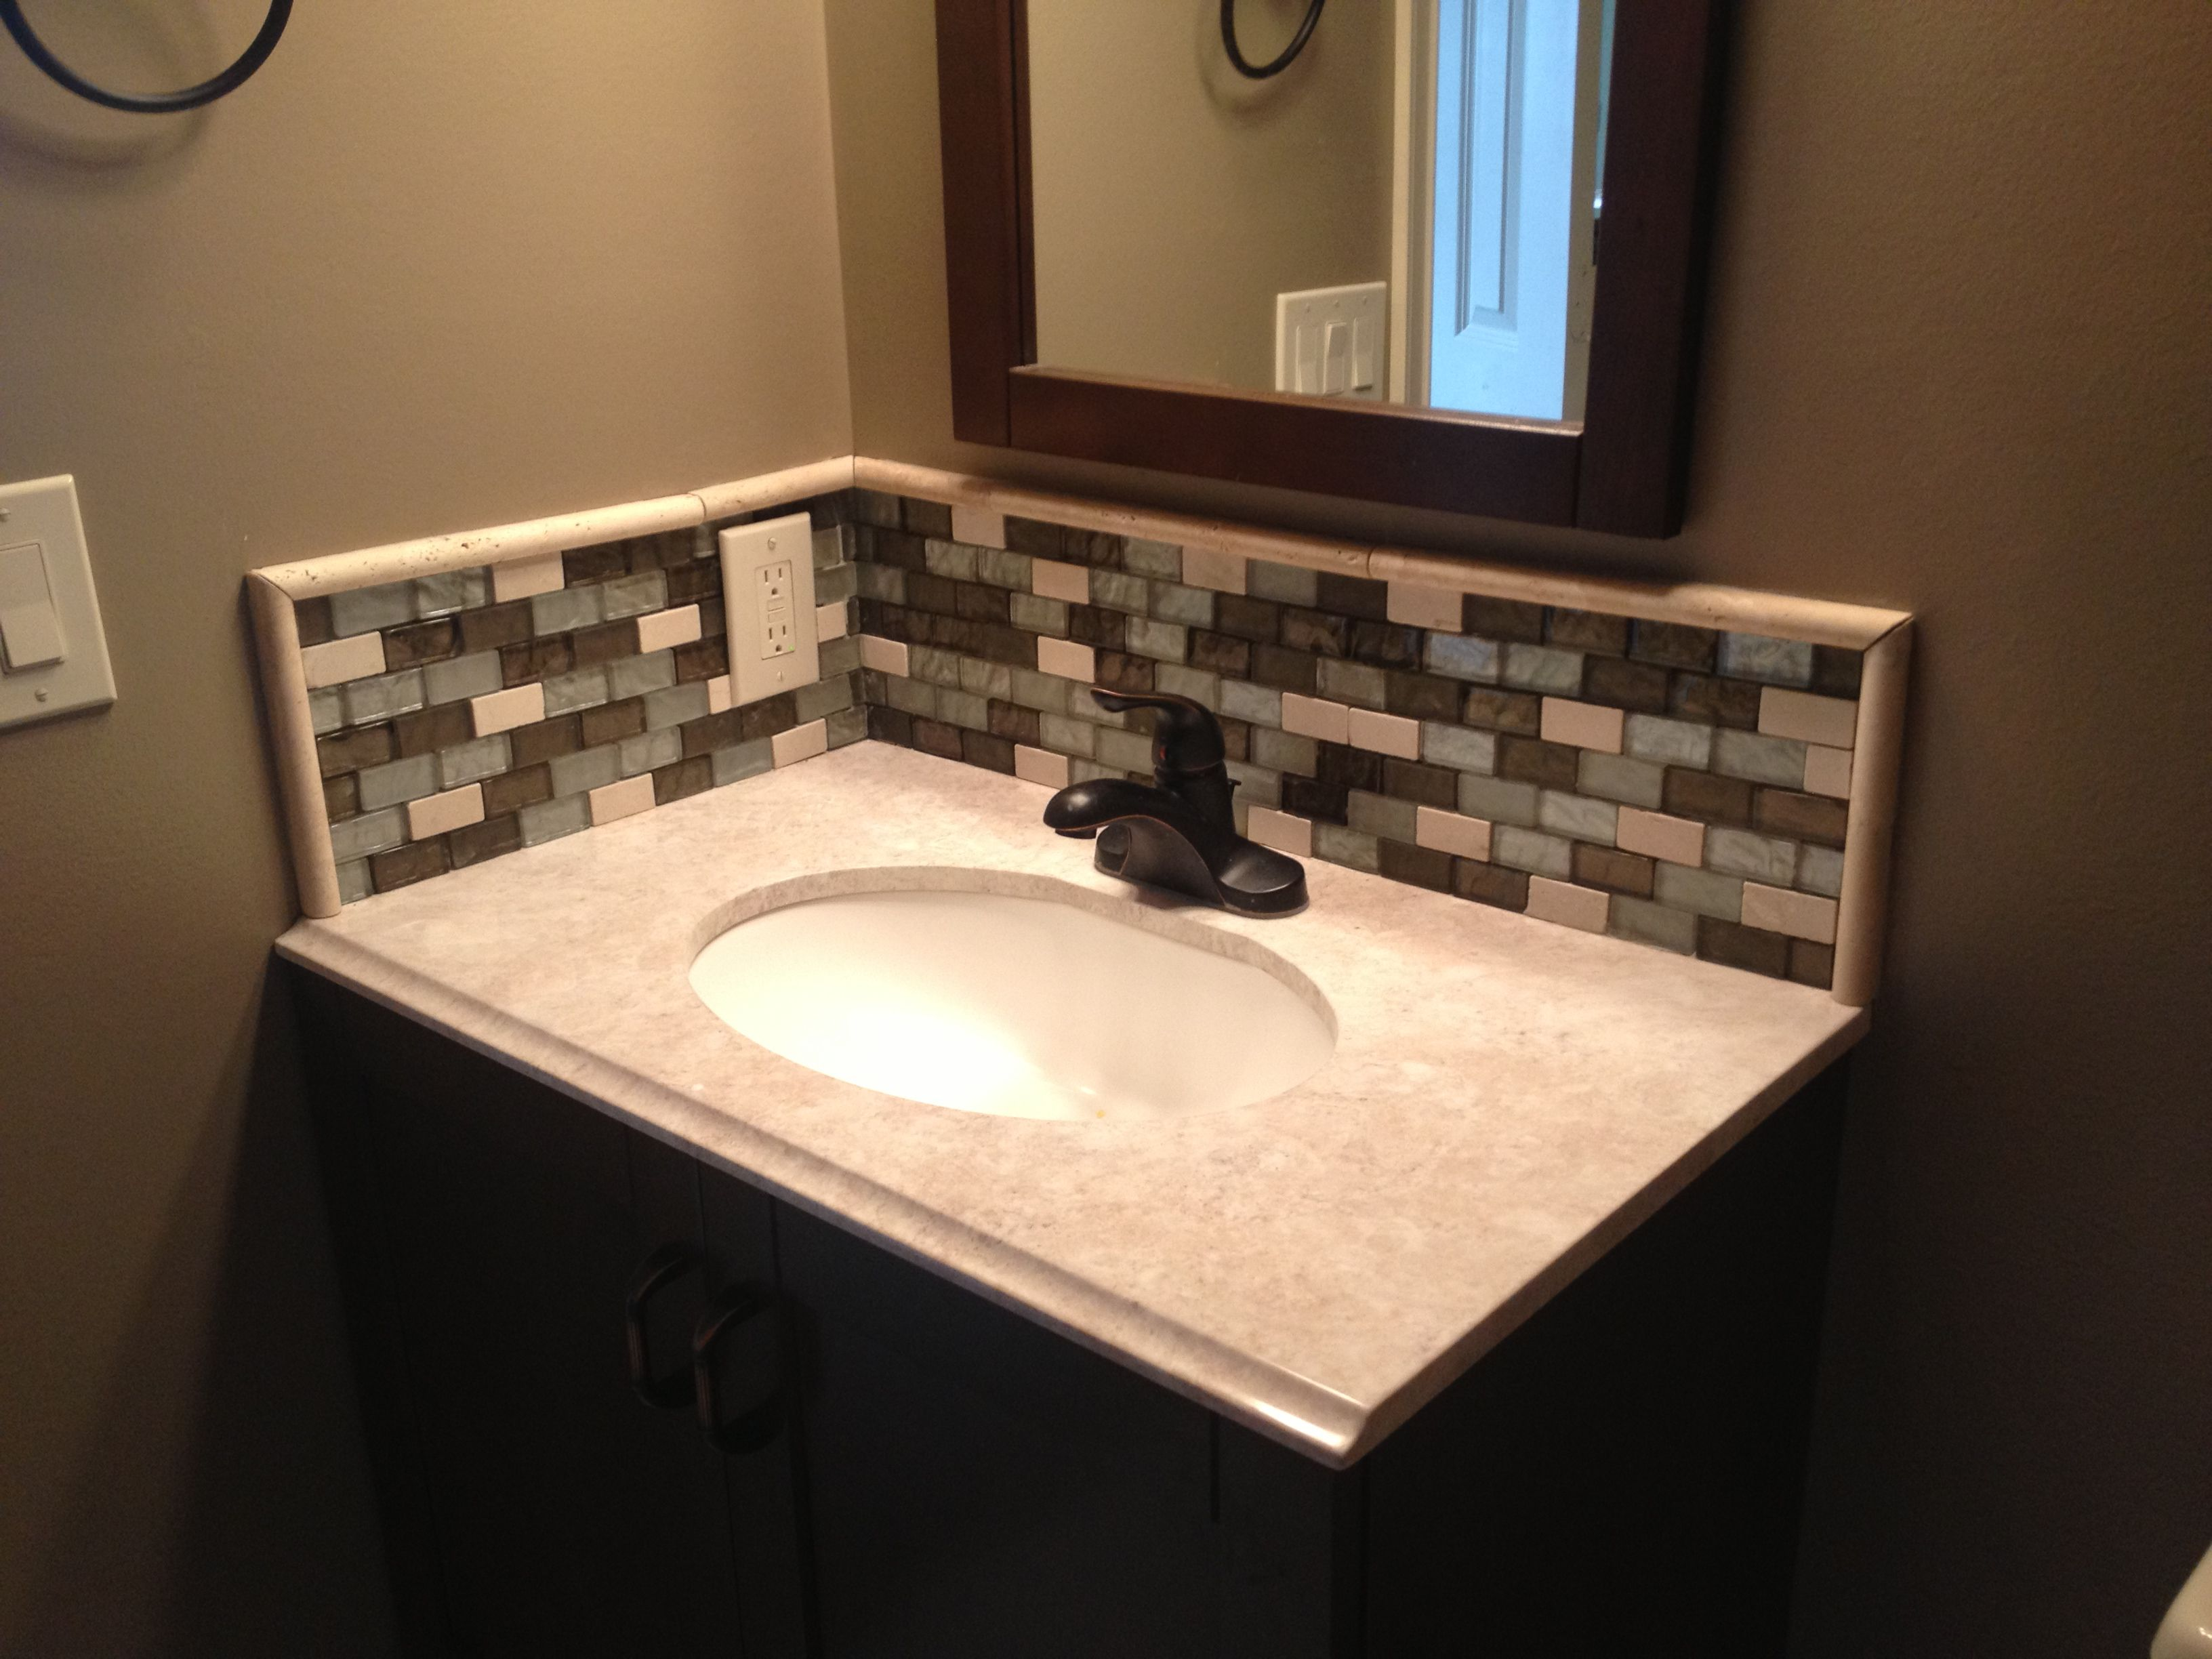 Splendid-design-glass-mosaic-bathroom-ideas-brown-gray- Bathroom Vanity Glass Tile Backsplash